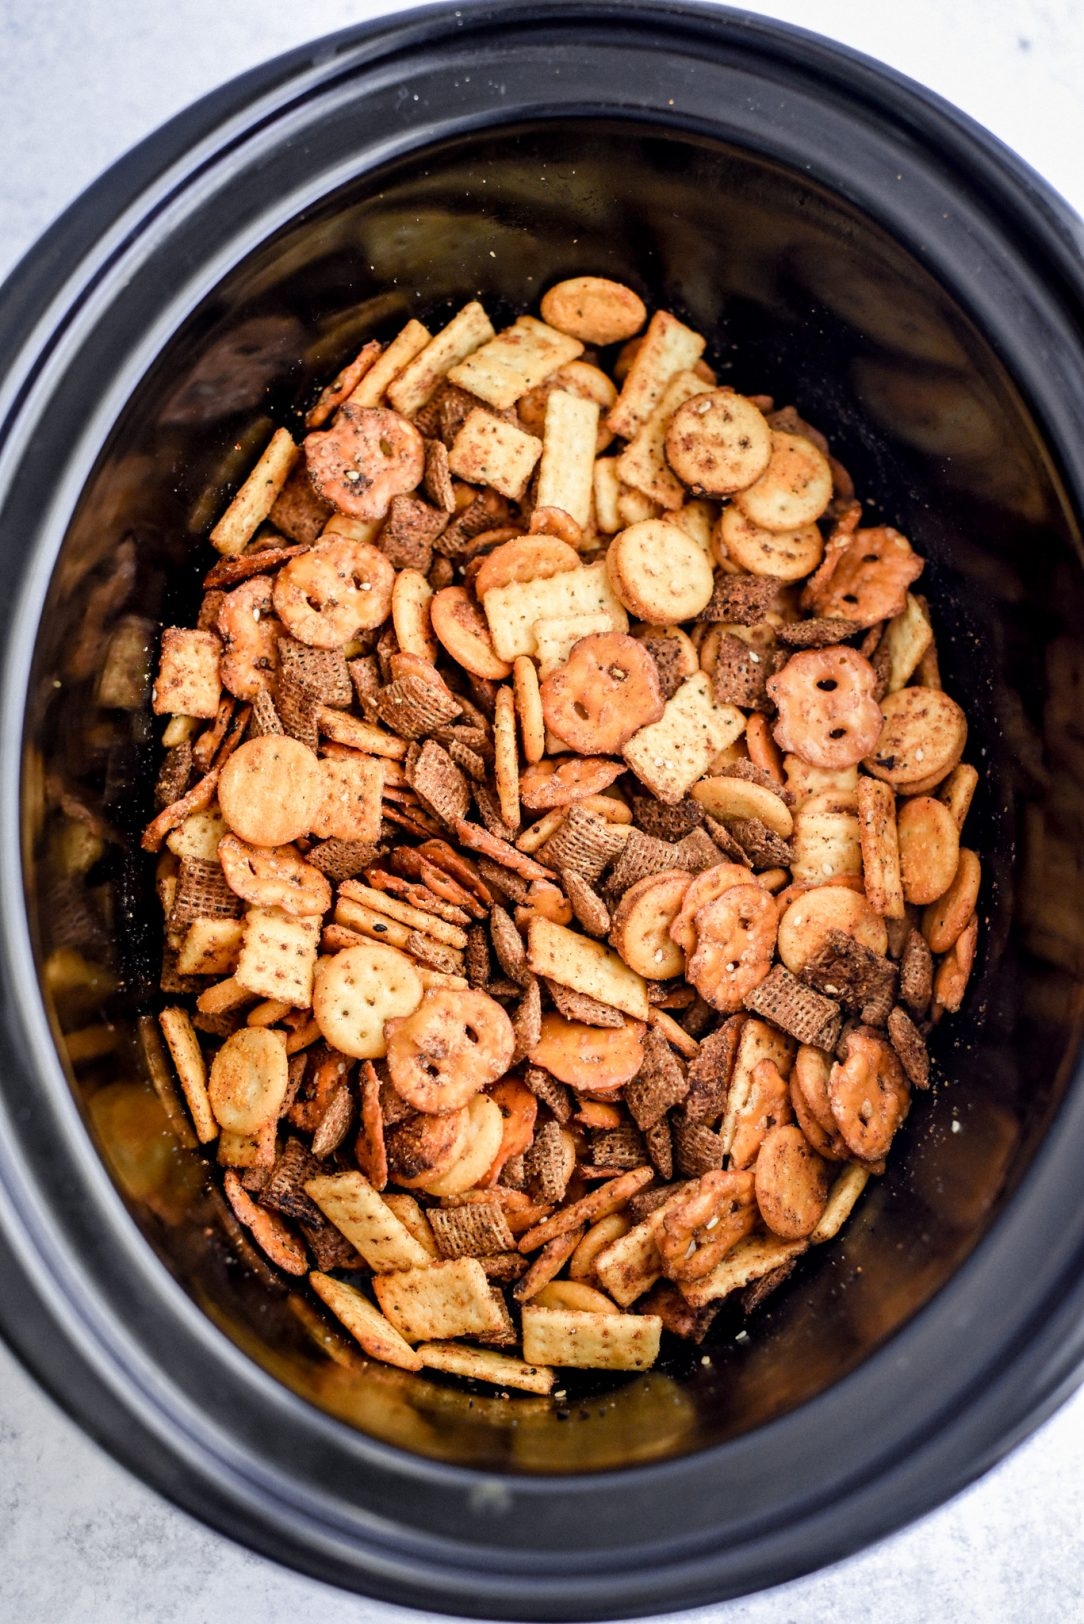 Snack mix in crock pot